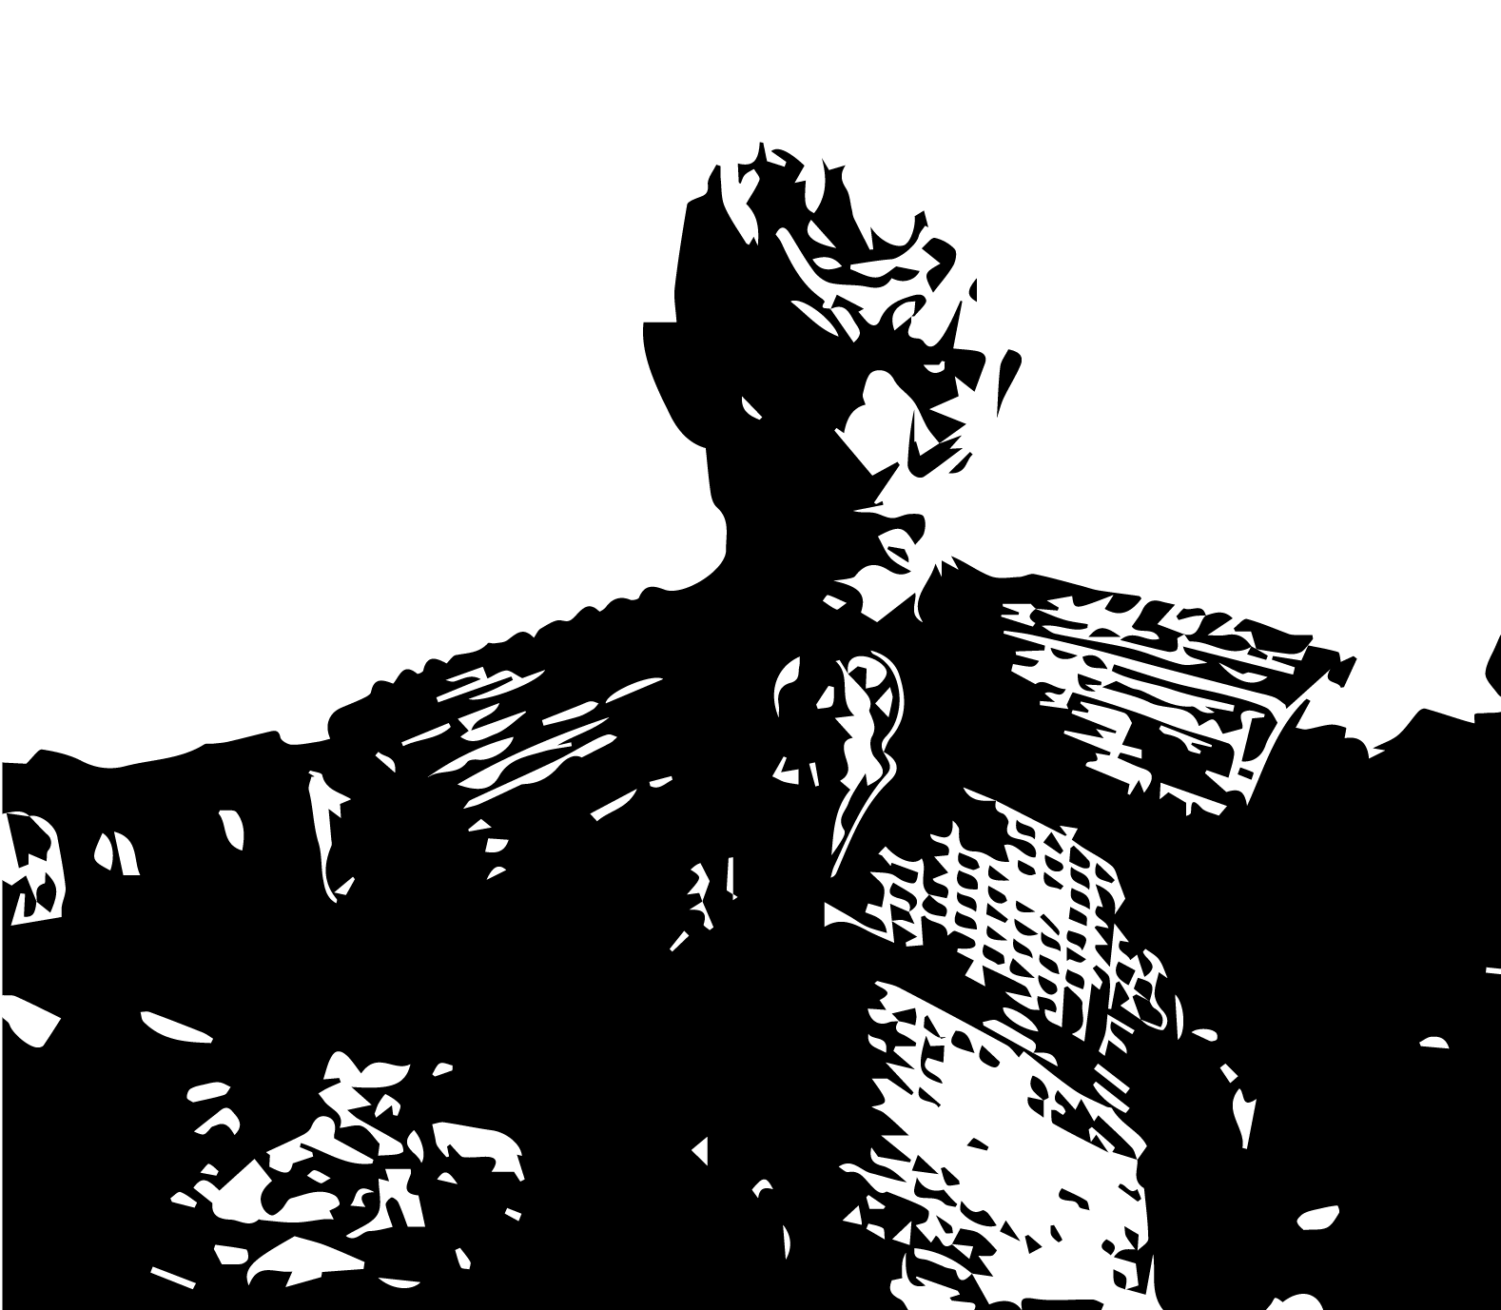 Illustration of the Night King in